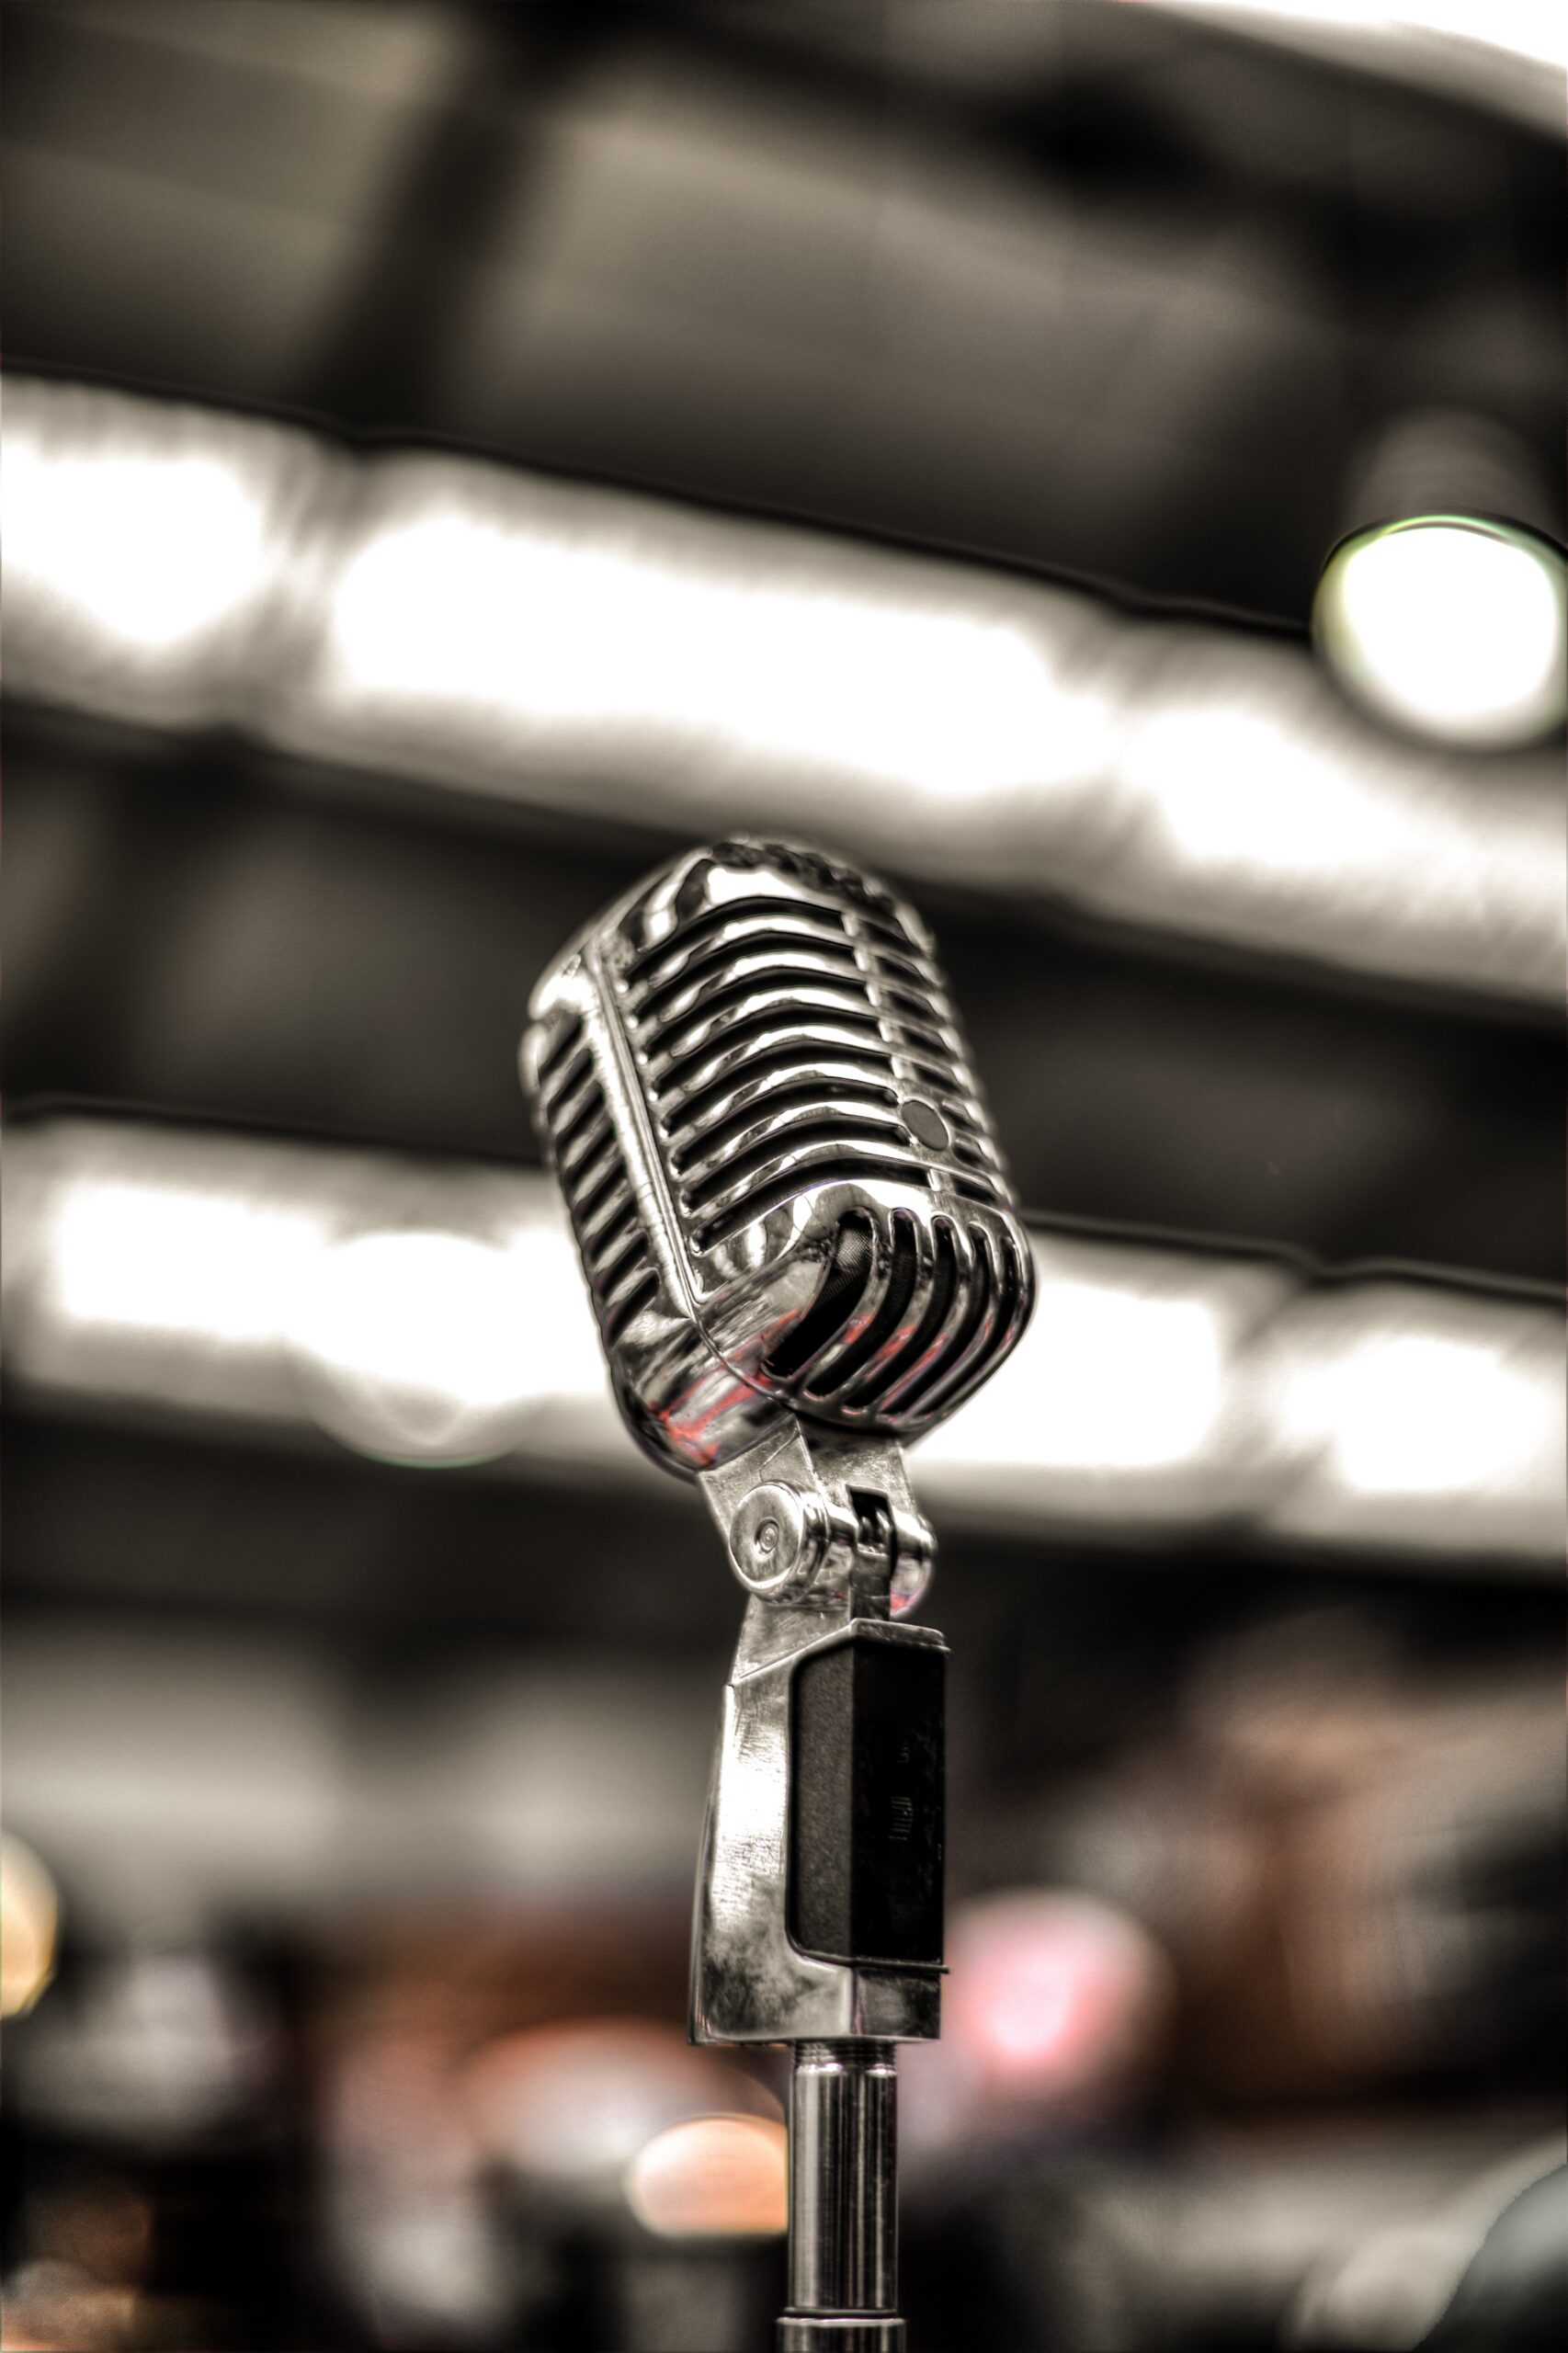 An old-fashioned microphone is shown in the foreground with a blurred background